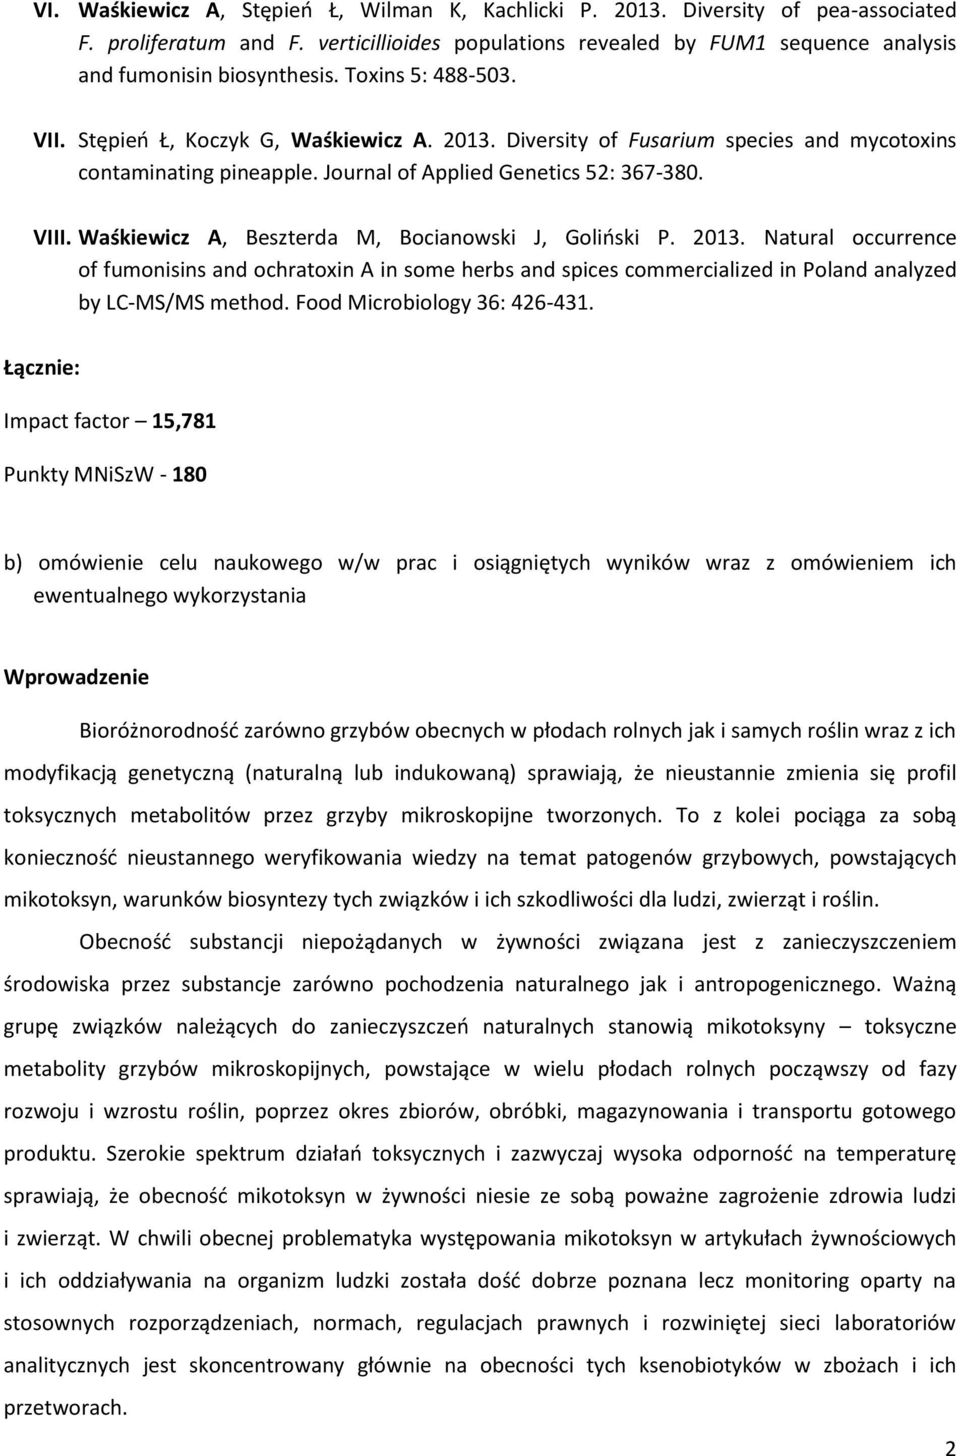 Waśkiewicz A, Beszterda M, Bocianowski J, Goliński P. 2013. Natural occurrence of fumonisins and ochratoxin A in some herbs and spices commercialized in Poland analyzed by LC-MS/MS method.